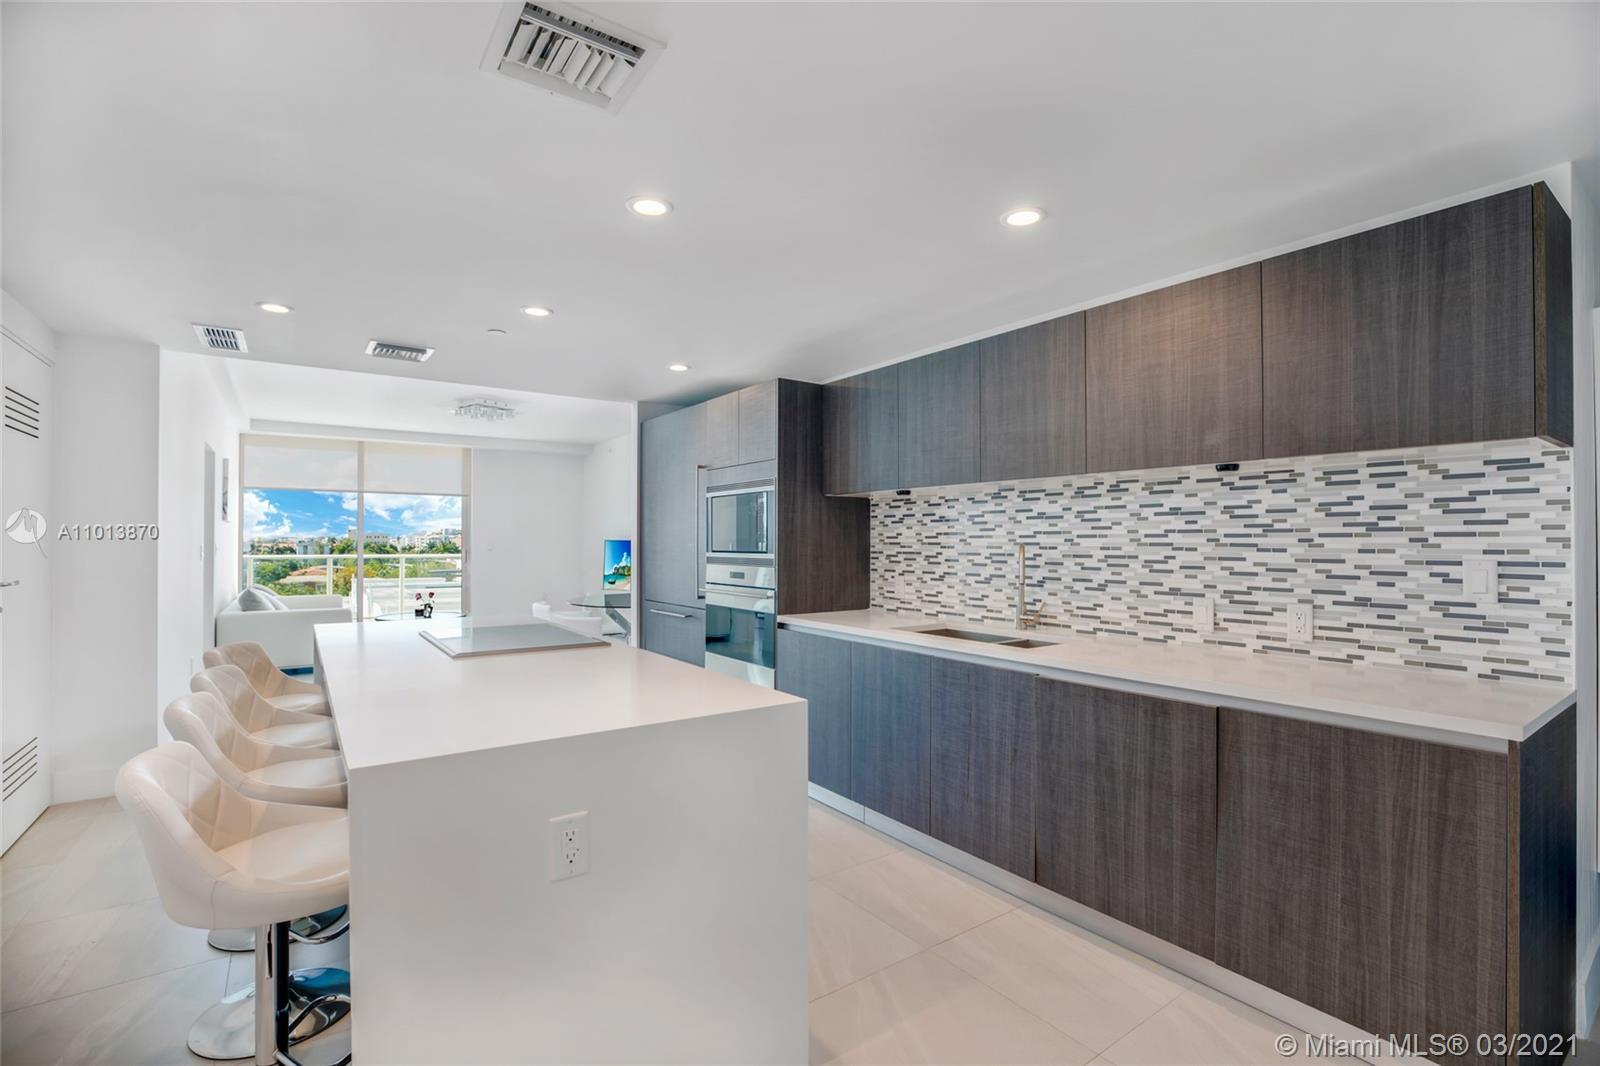 Fantastic opportunity to live in the prestigious neighborhood of Bay Harbor Islands, FL. Brand new construction comprises seven floors and 30 units that feature an open kitchen with Sub-Zero appliances, refrigerator baths with exotic stone & walk-in closets. Le Jardin Residences offers excellent amenities - 2 parking spaces, gym, and rooftop pool,  barbecue area, concierge. A short distance from Le Jardin Residences, you'll find many restaurants, coffee shops, parks, and a luxurious Bay Harbour shopping center. Public schools in Bay Harbor Islands are above average. A+ School Ruth K. Broad Bay Harbor K-8 Center. Fully furnished LEASED UNTIL JUNE 2022   BEST OPTION FOR INVESTORS Total sqf by developer 1623sq.ft   Residence -1409sq.ft and Balcony/ Terrace 214sq.ft